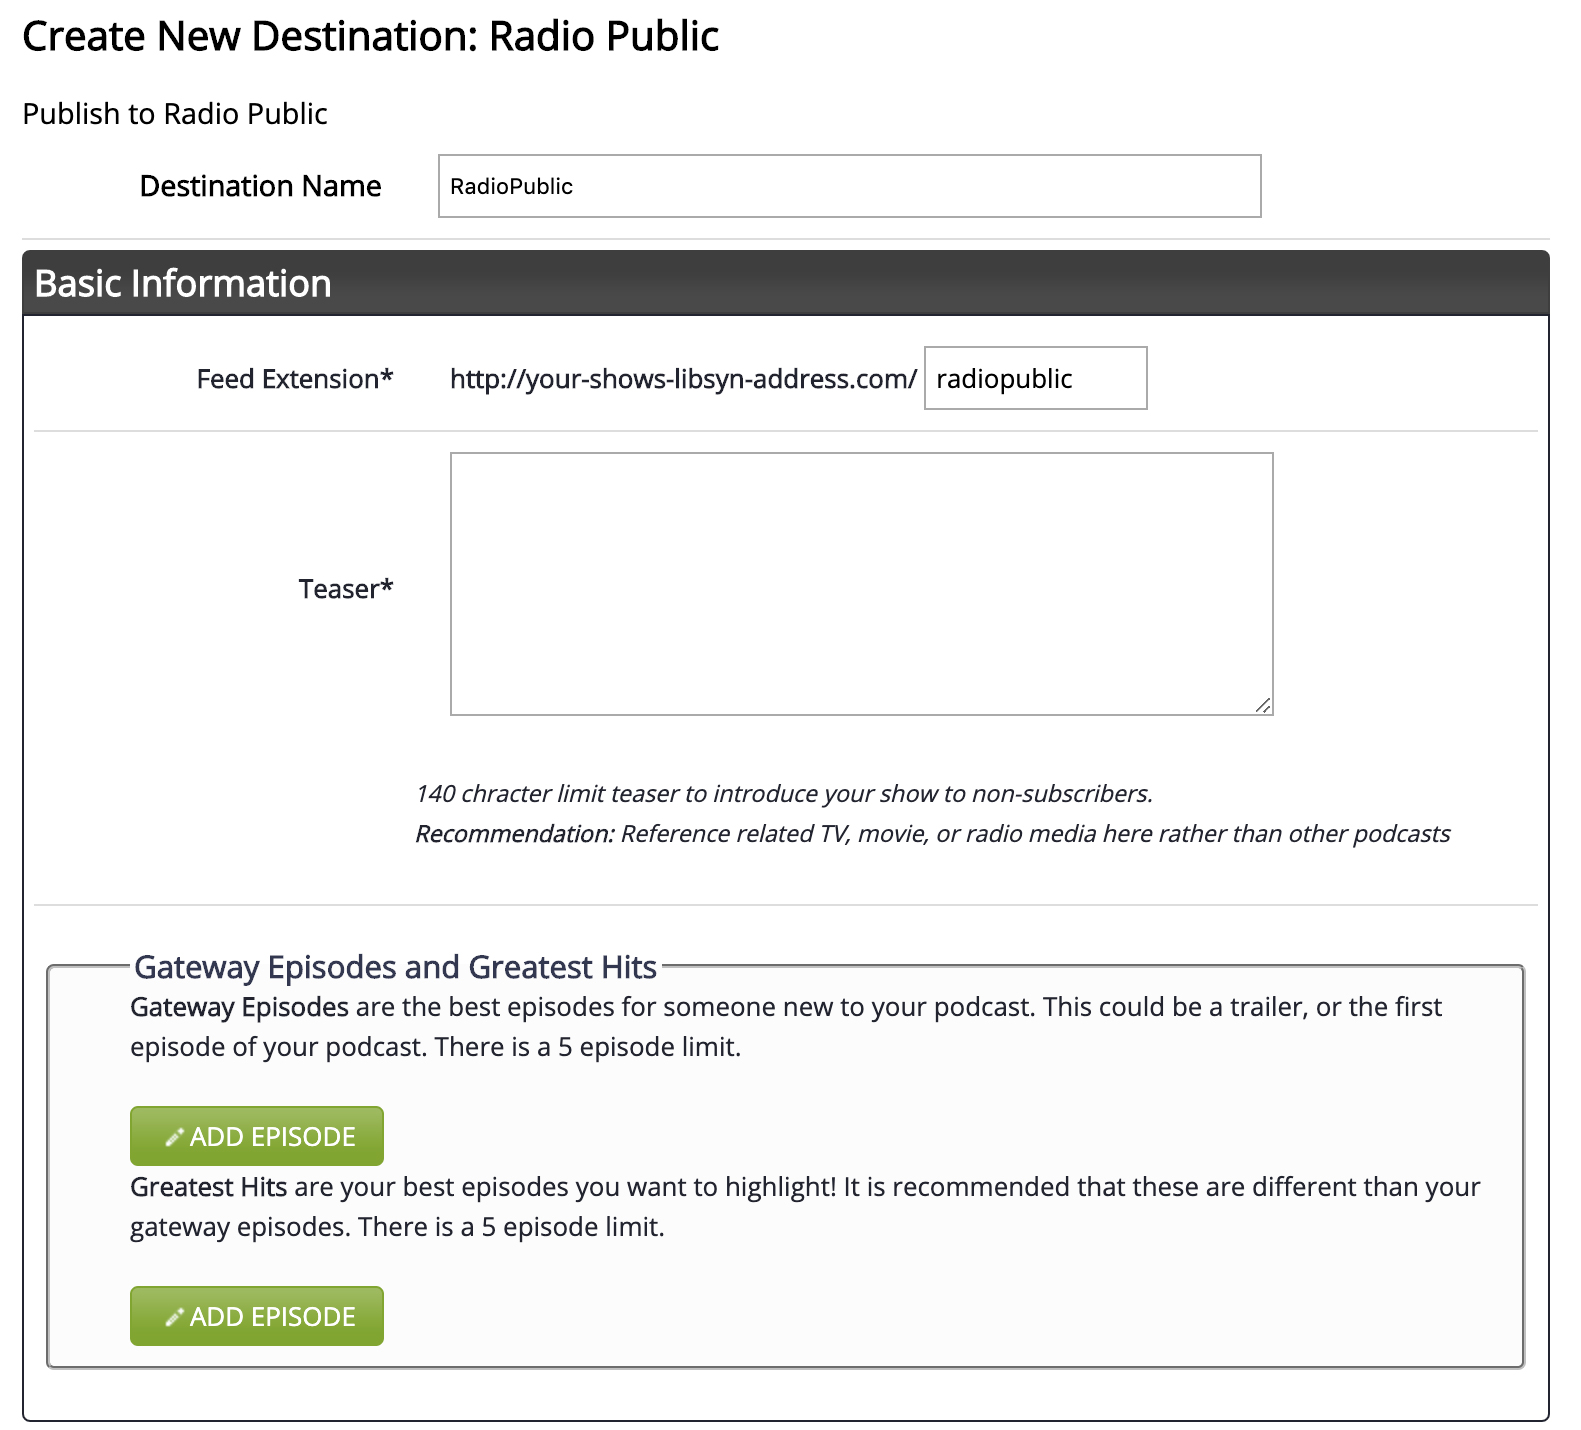 Configuring & Submitting to RadioPublic